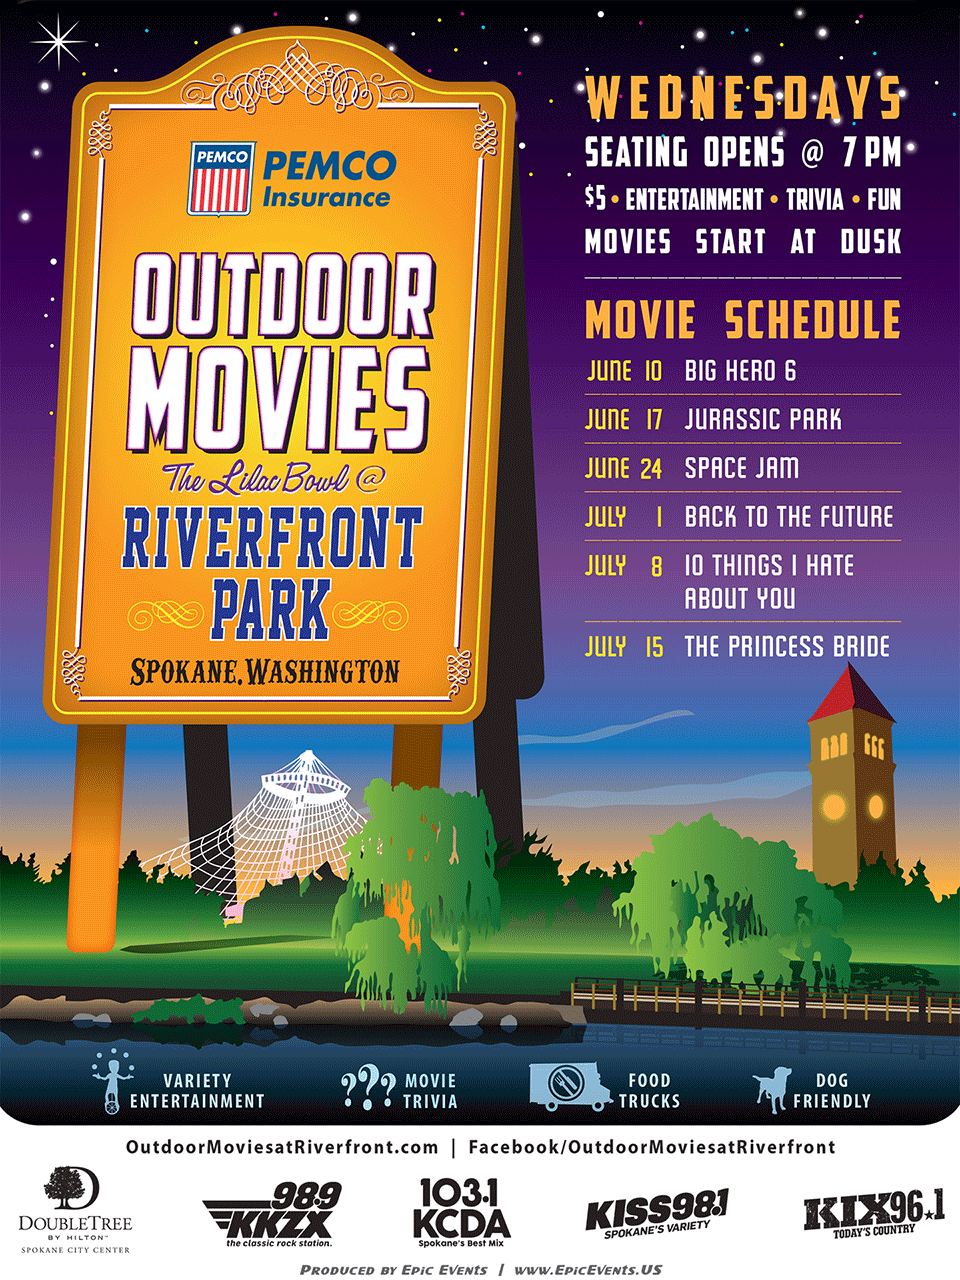 pemco outdoor movies at riverfront park